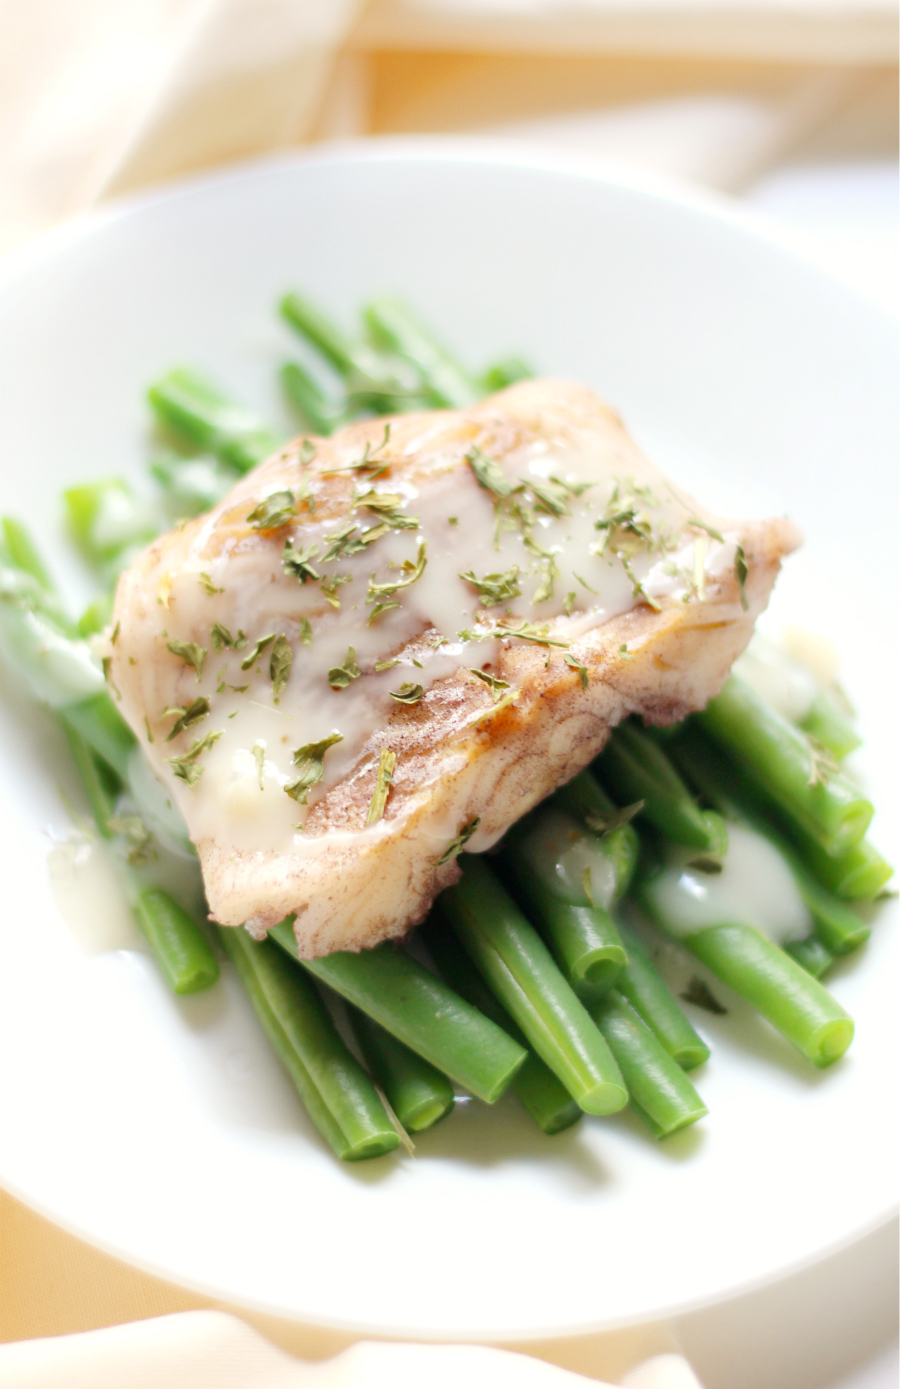 Wine Poached Cod with Sweet Onion Drizzle | Strength and Sunshine @RebeccaGF666 Treat yourself to an easy and elegant dinner of Wine Poached Cod with Sweet Onion Drizzle. This recipe is gluten-free, dairy-free, egg-free, nut-free, paleo, and perfect for a luxurious date night without all the fuss!